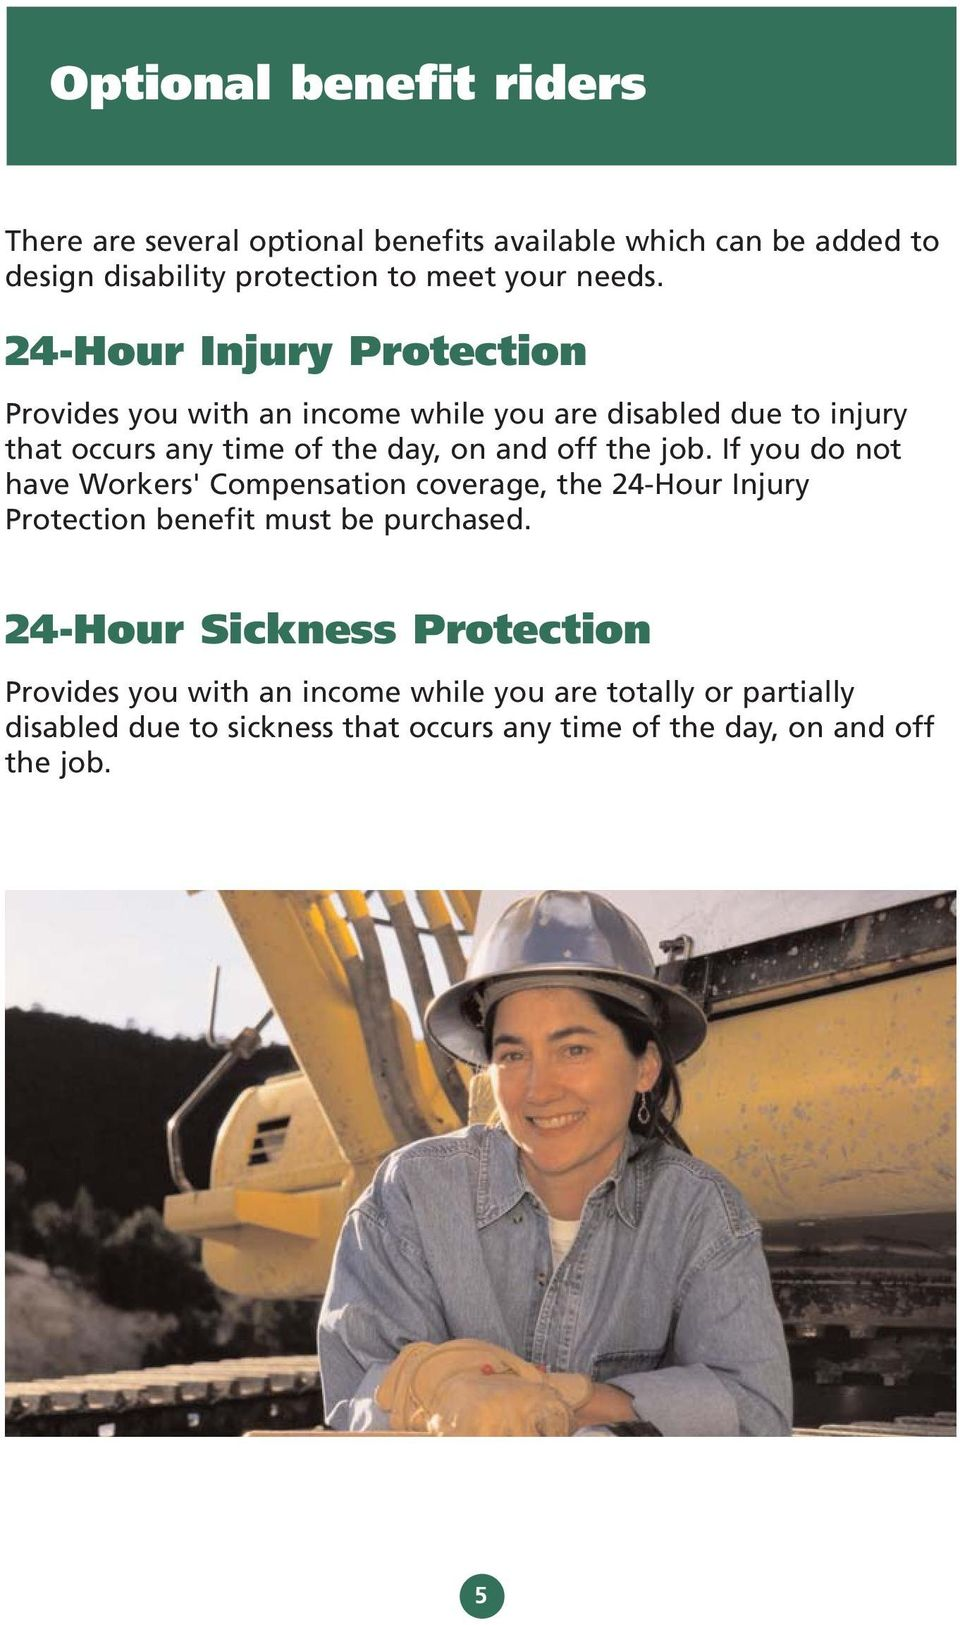 job. If you do not have Workers' Compensation coverage, the 24-Hour Injury Protection benefit must be purchased.